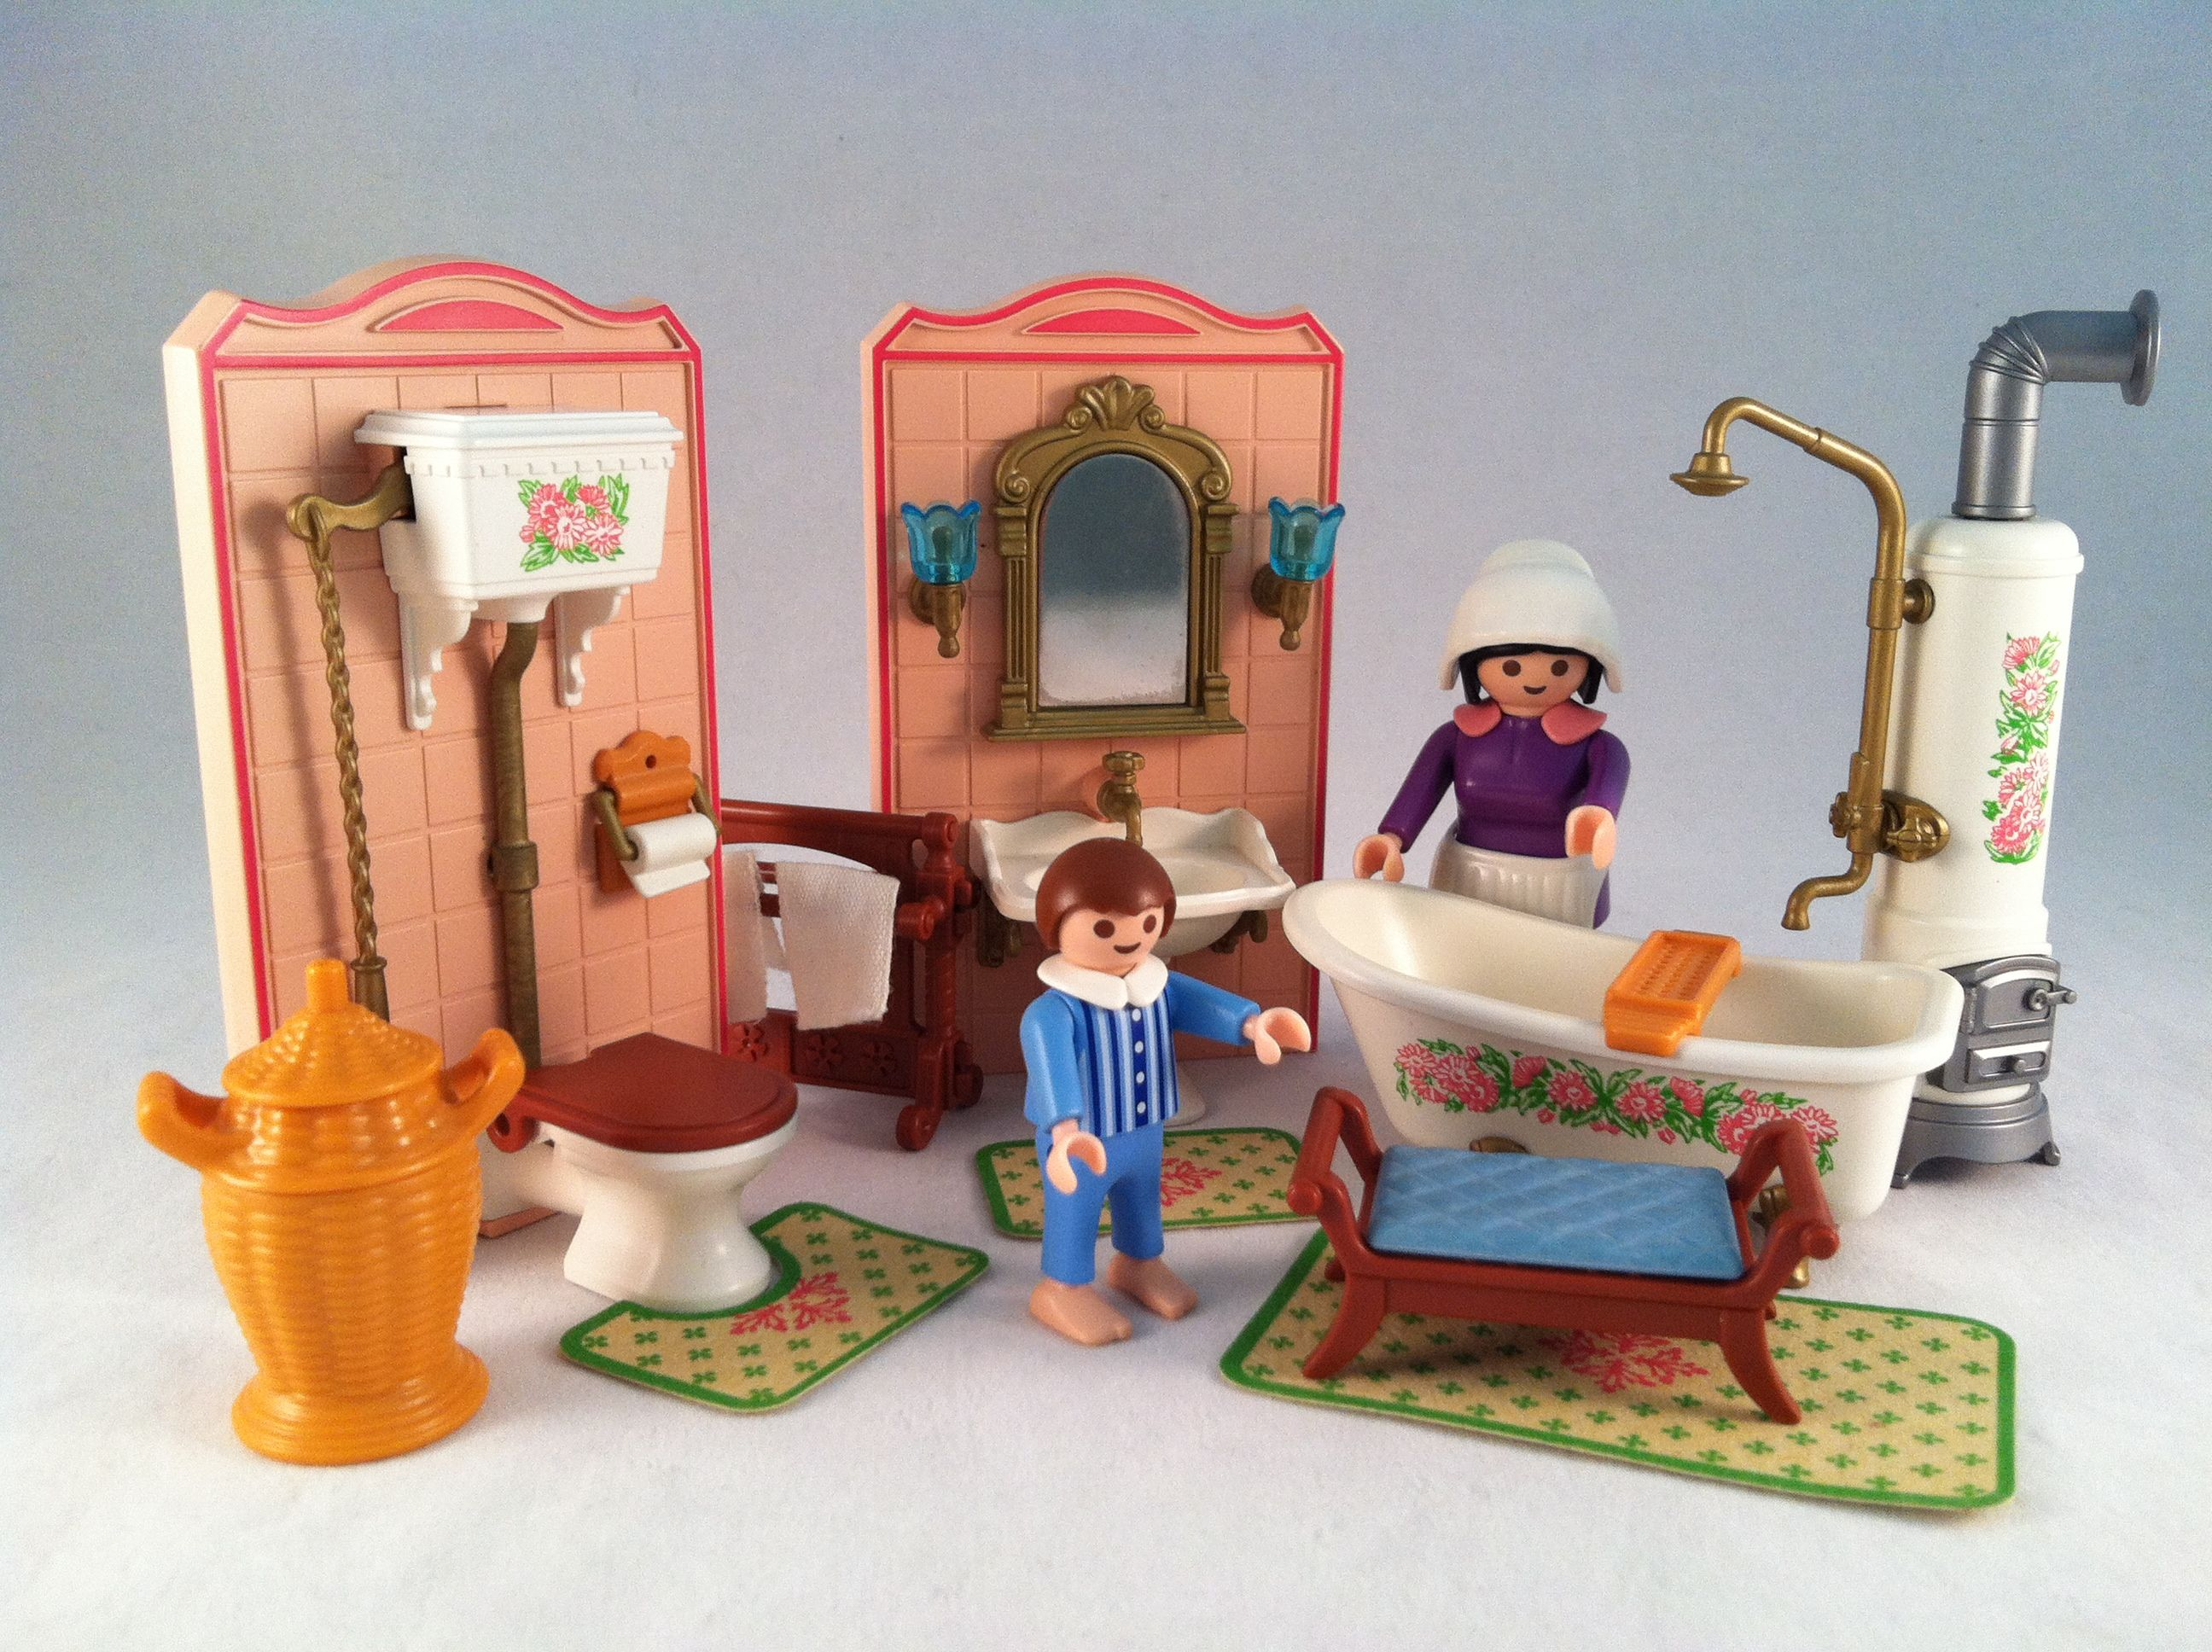 best playmobil bathroom images - the best small and functional, Badezimmer ideen